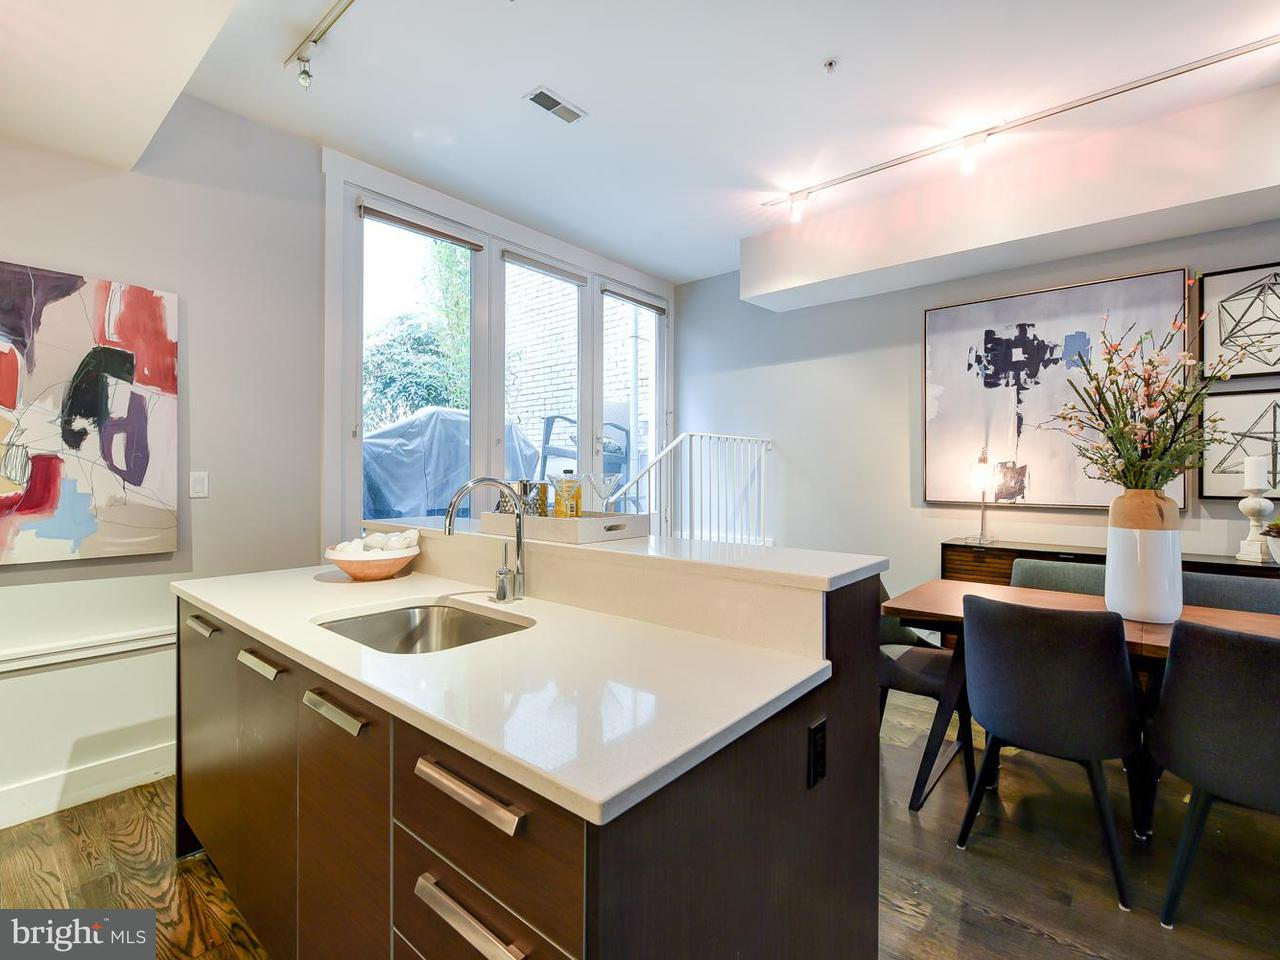 Additional photo for property listing at 426 M ST NW #B 426 M ST NW #B Washington, District Of Columbia 20001 United States